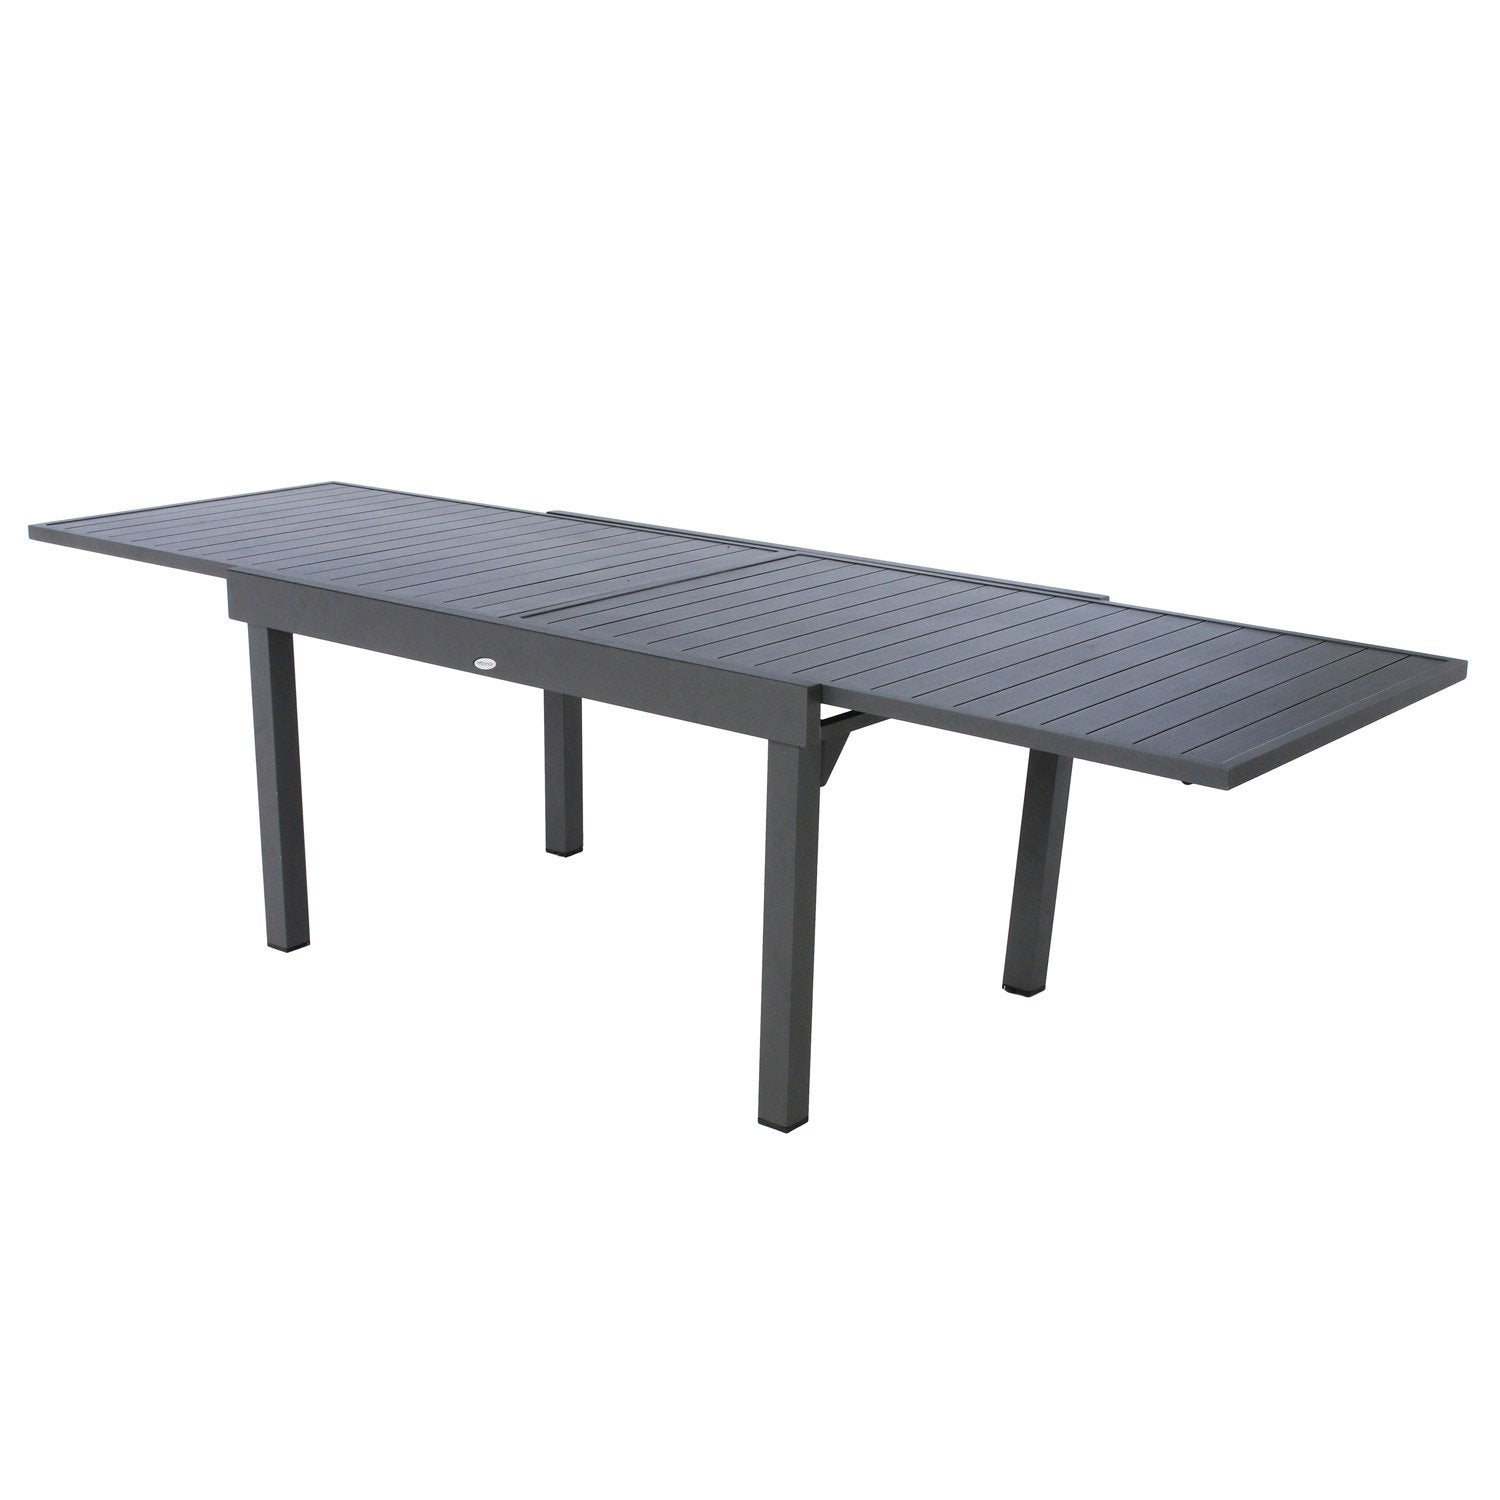 Table Jardin Leroy Merlin - Steadlane.club